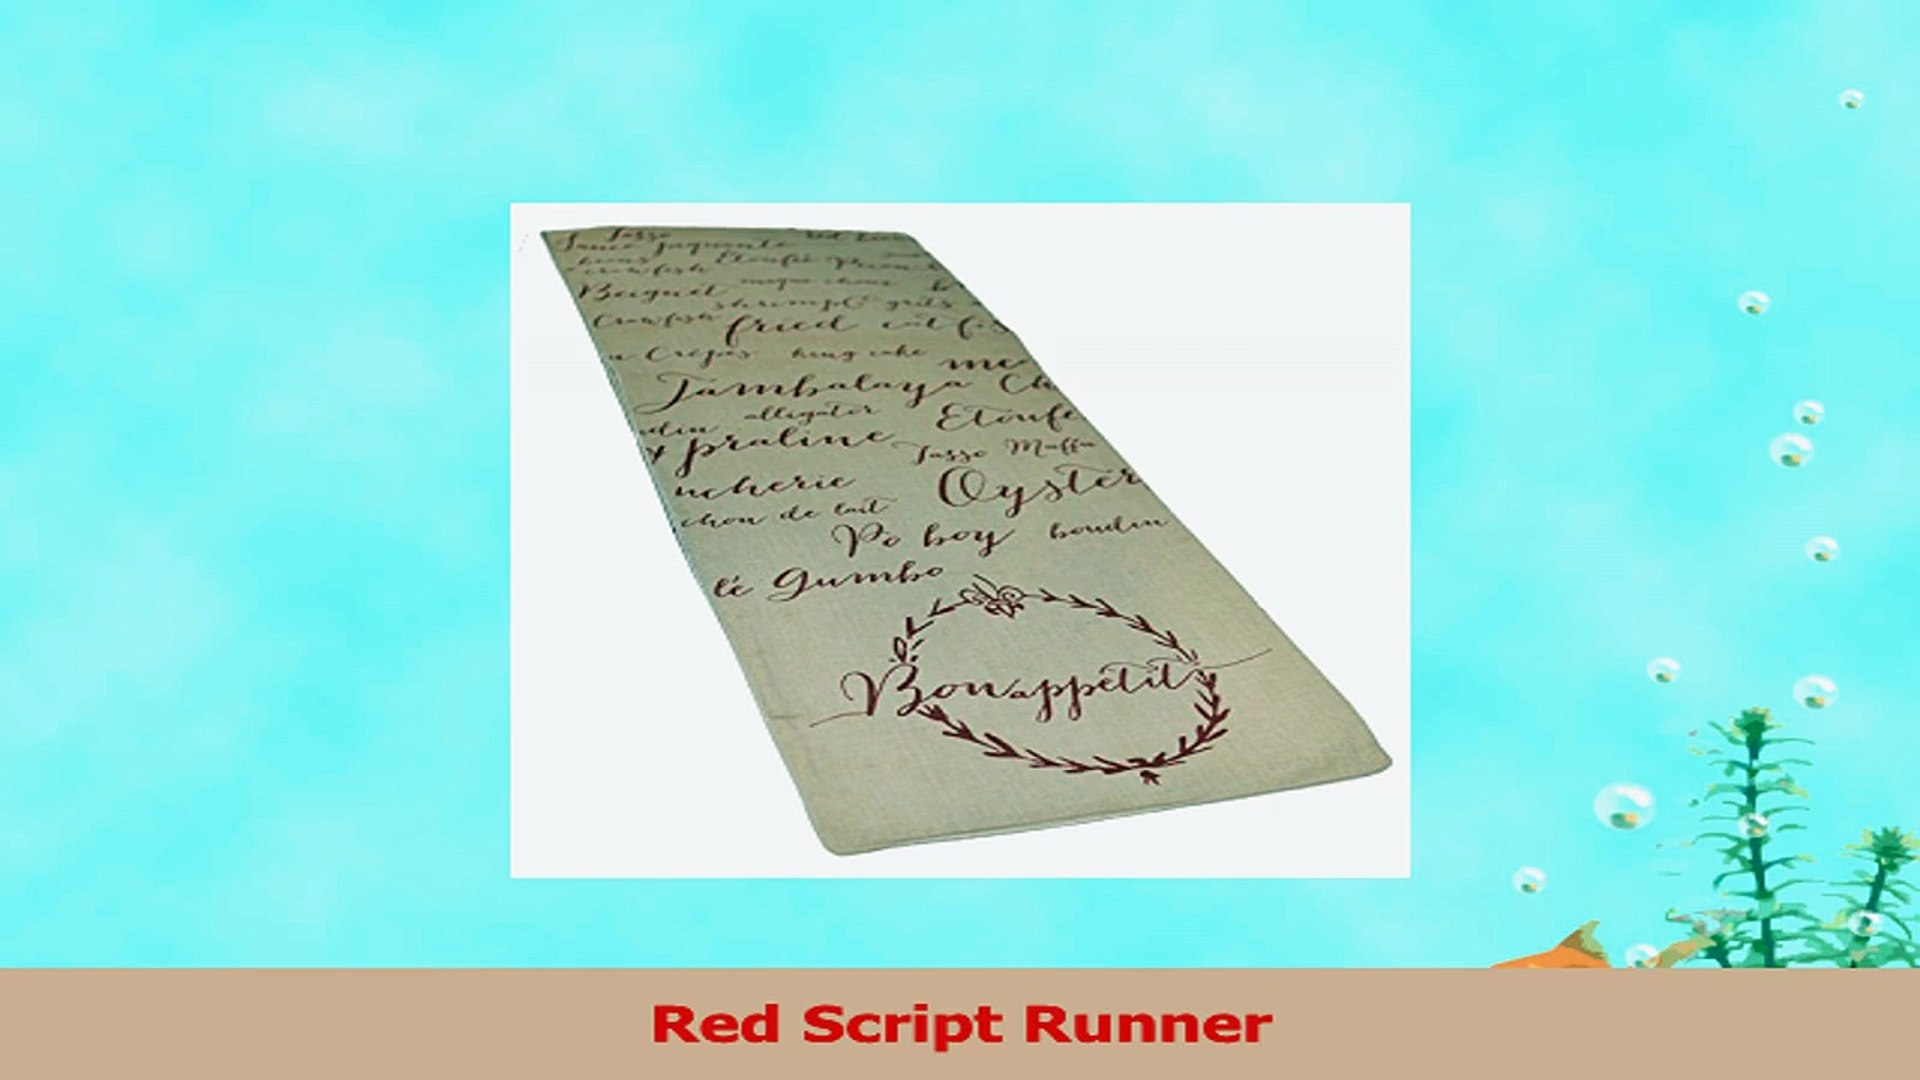 Red Traditional Runner Rug 67cm x 300cm Approx 10x2 Top Quality Runner1920 x 1080 jpeg 146kB